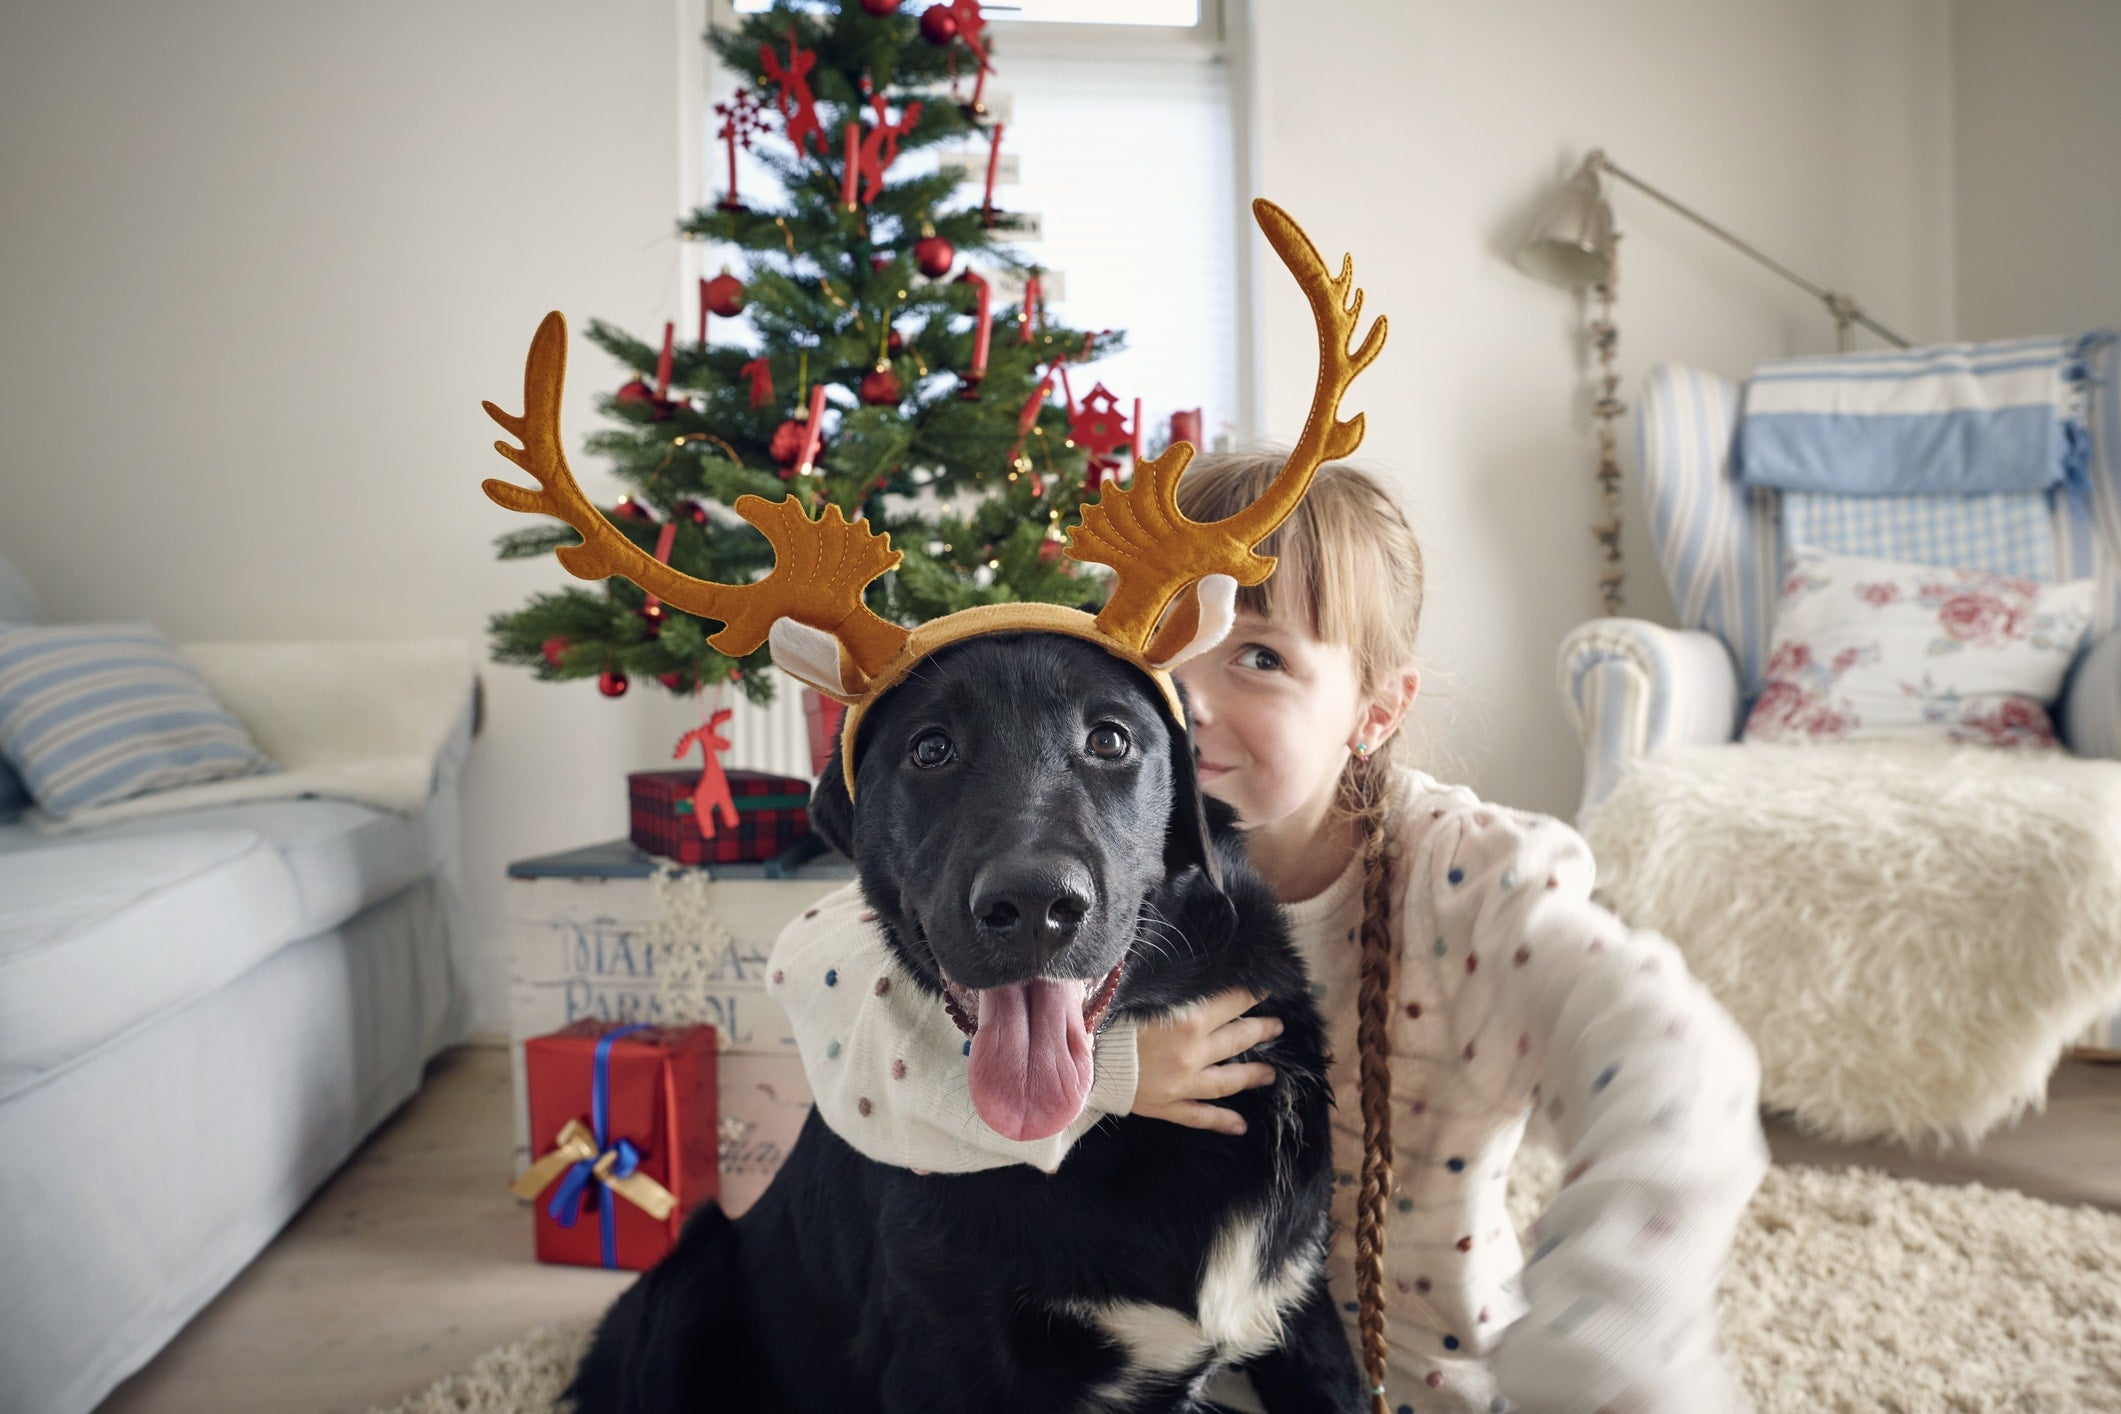 15 Pet Gifts For Pet Owners This Christmas